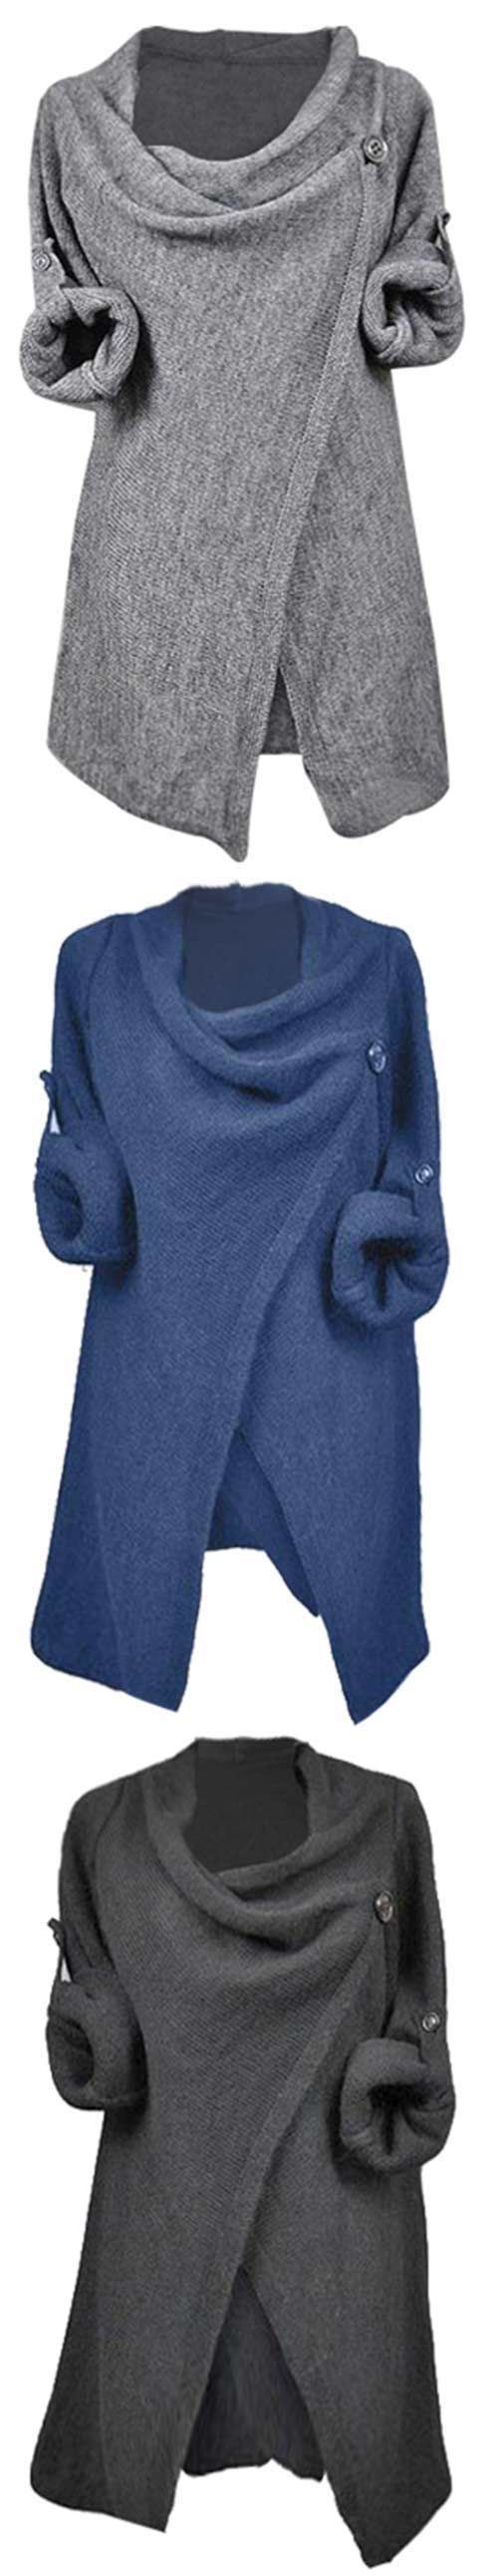 Warm up for incoming fall with $26.99 Only! Casual style makes you easy and comfy in solid color. Beautifully crafted, this piece is the perfect addition to your wardrobe. You need it at Cupshe.com